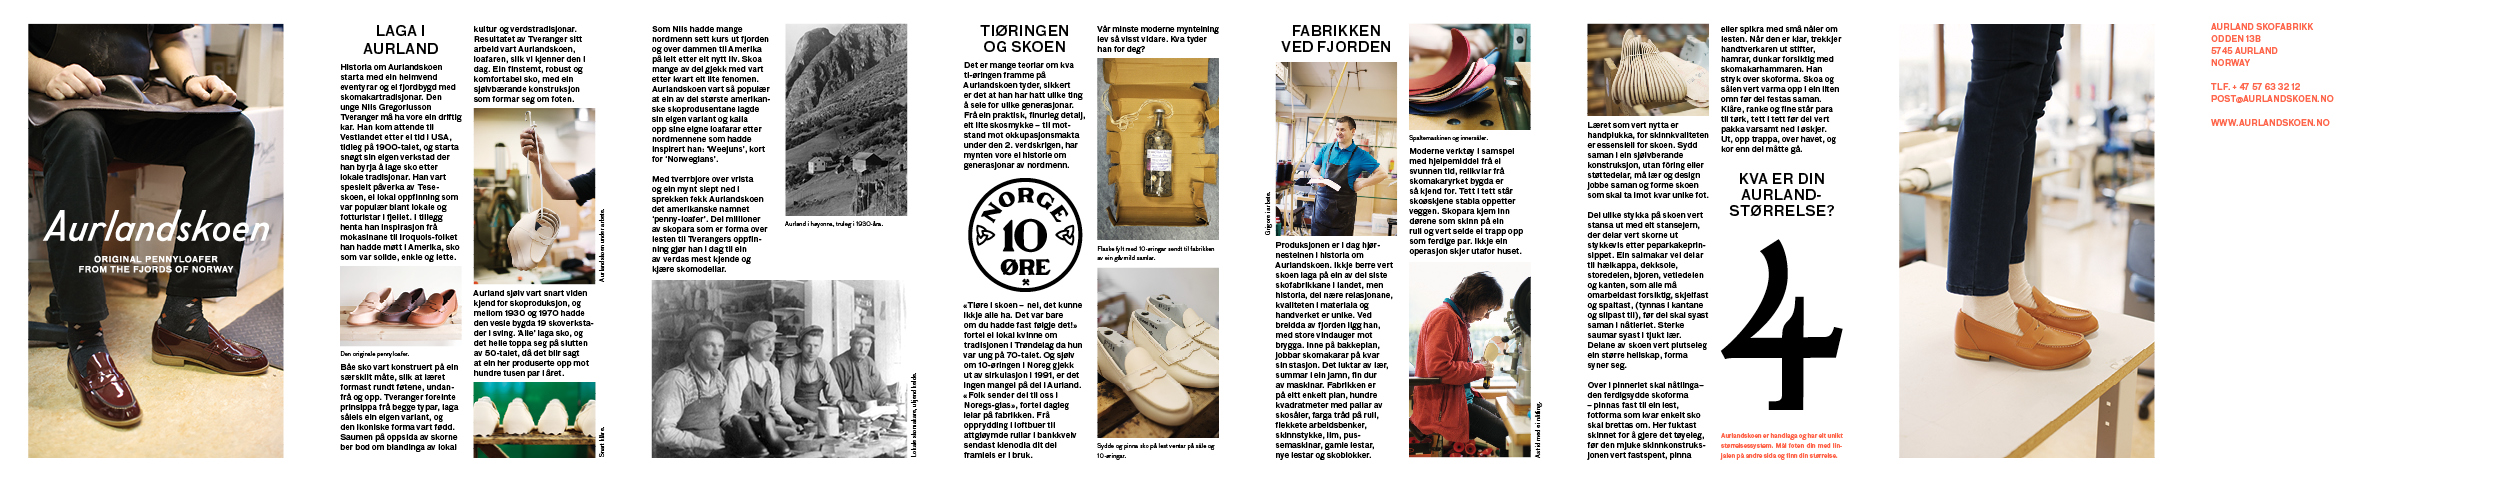 Brochure side 2: Norwegian translation